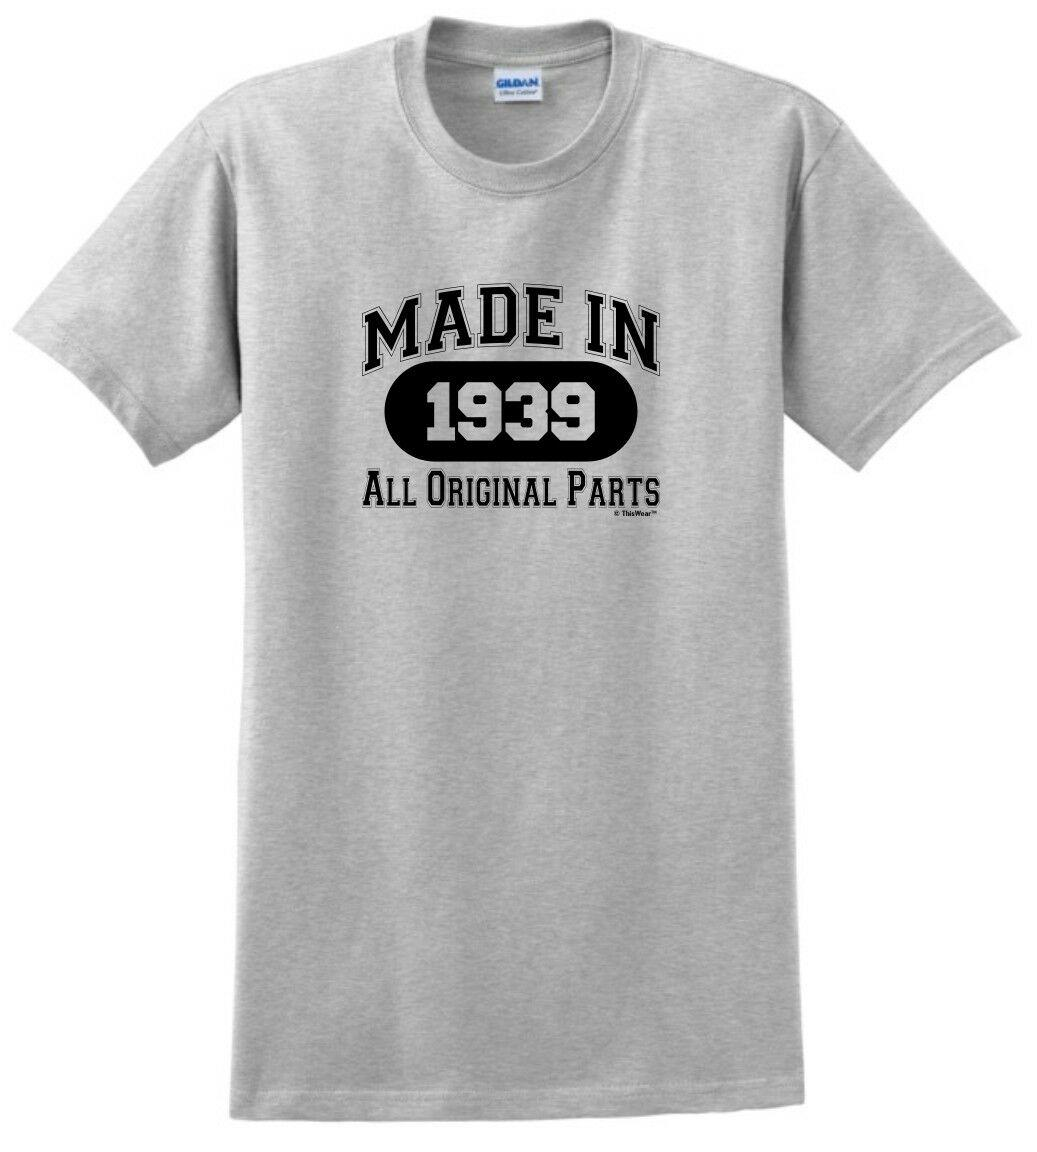 80th Birthday Gifts For Men Made In 1939 All Original Parts Mens SS T Shirt Funny Unisex Casual Online Shopping Print On From Tshirtkidd